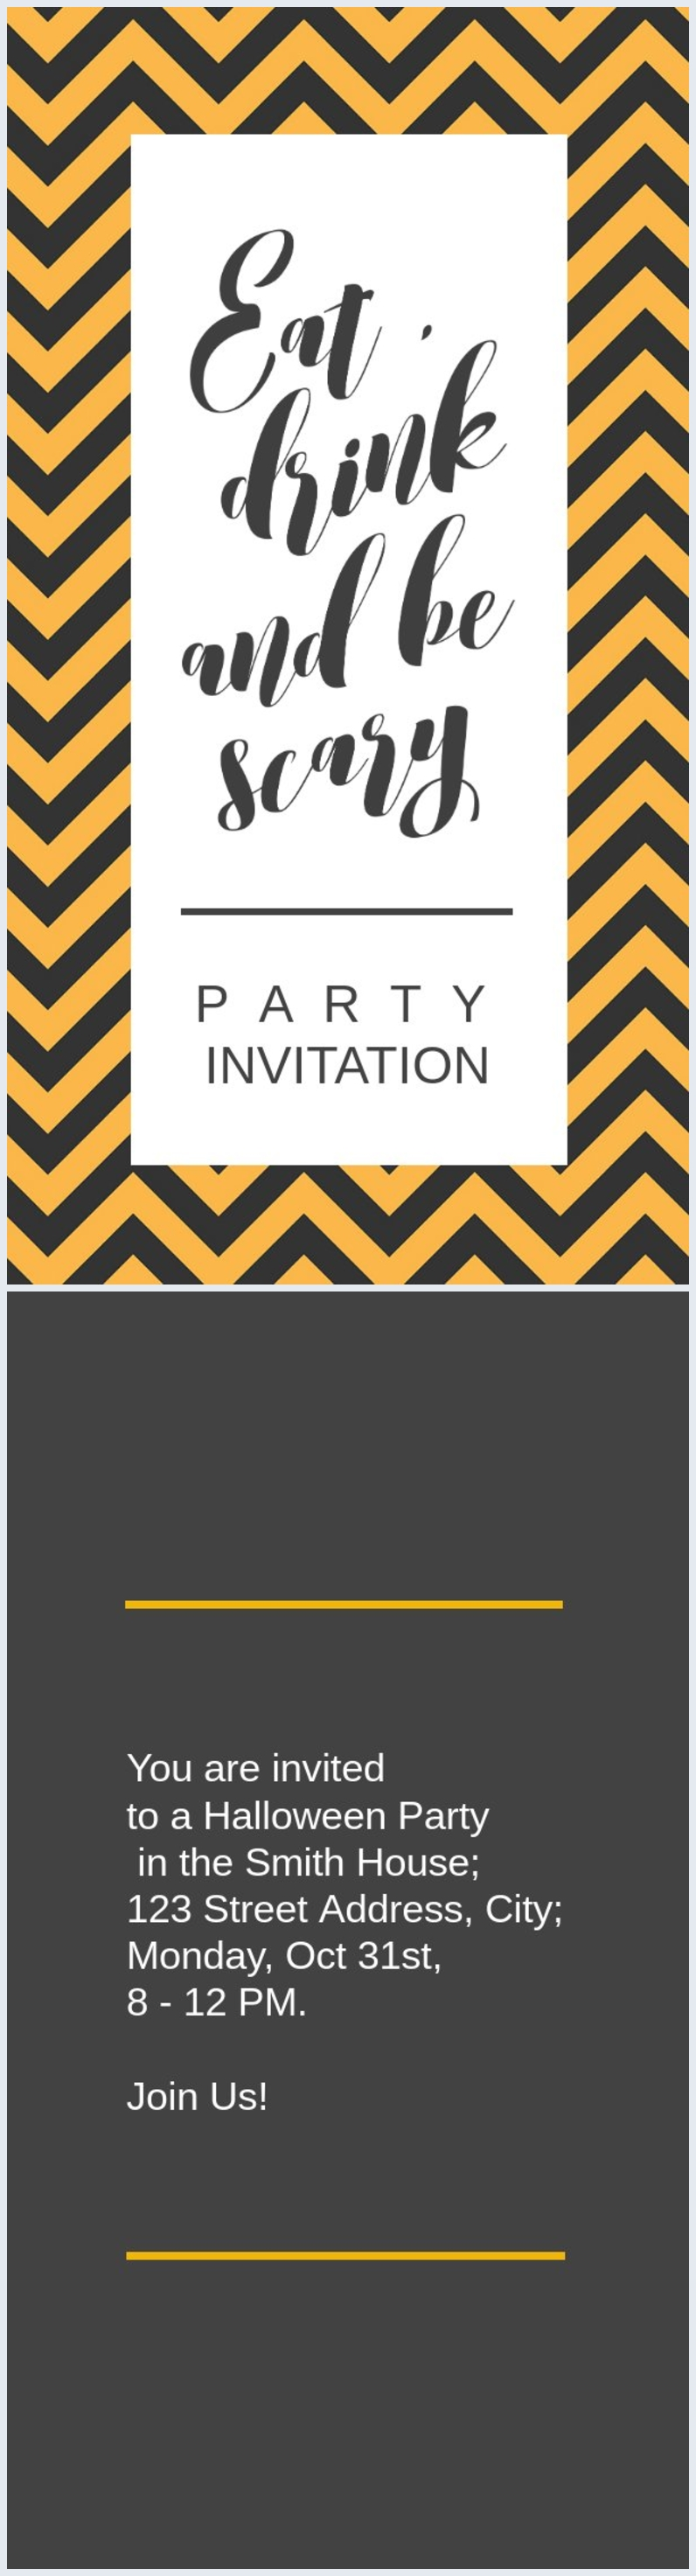 Halloween Party Invitation Example